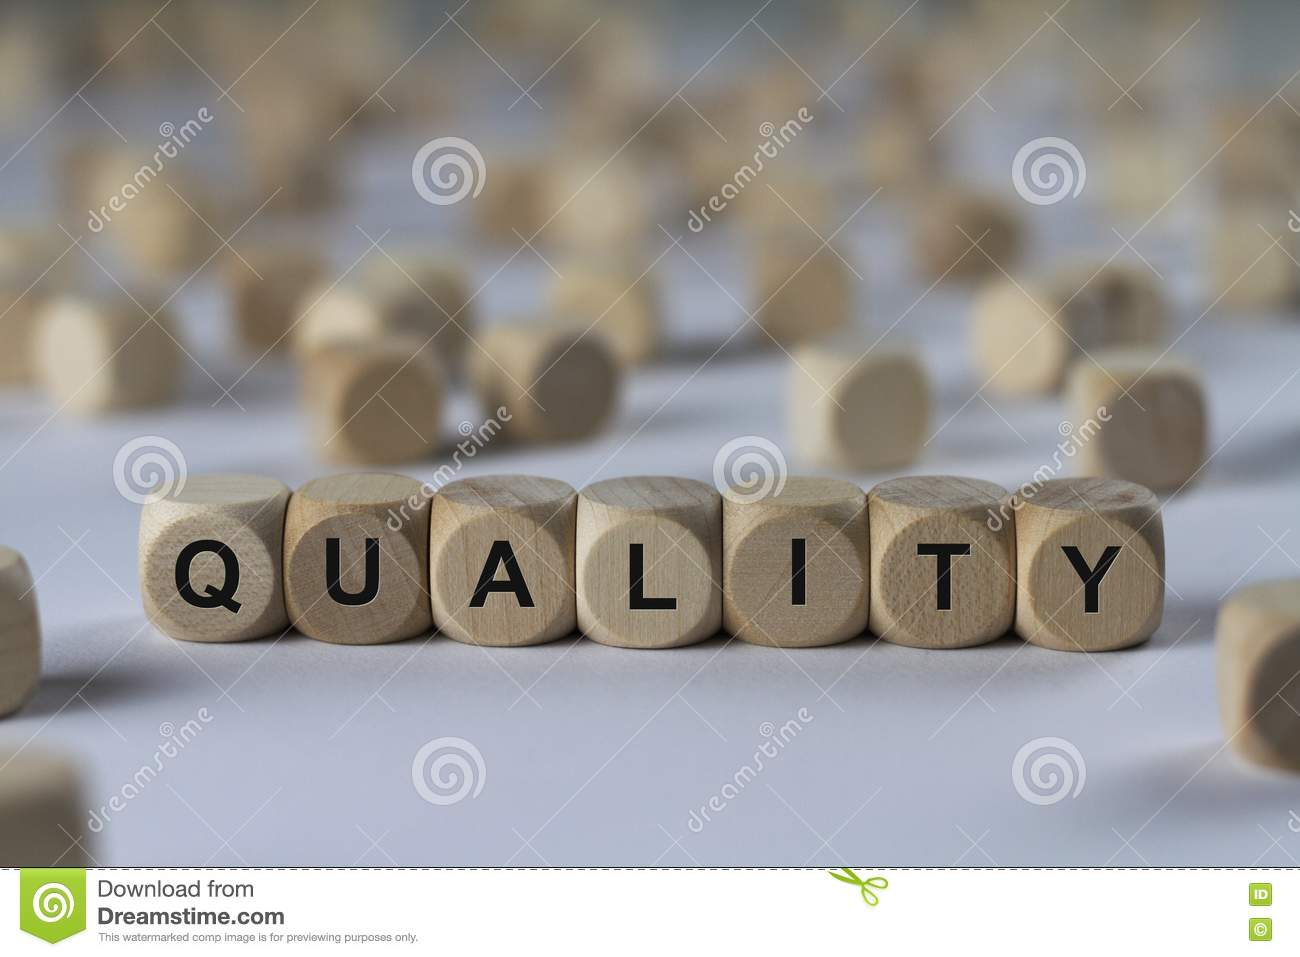 Quality - cube with letters, sign with wooden cubes